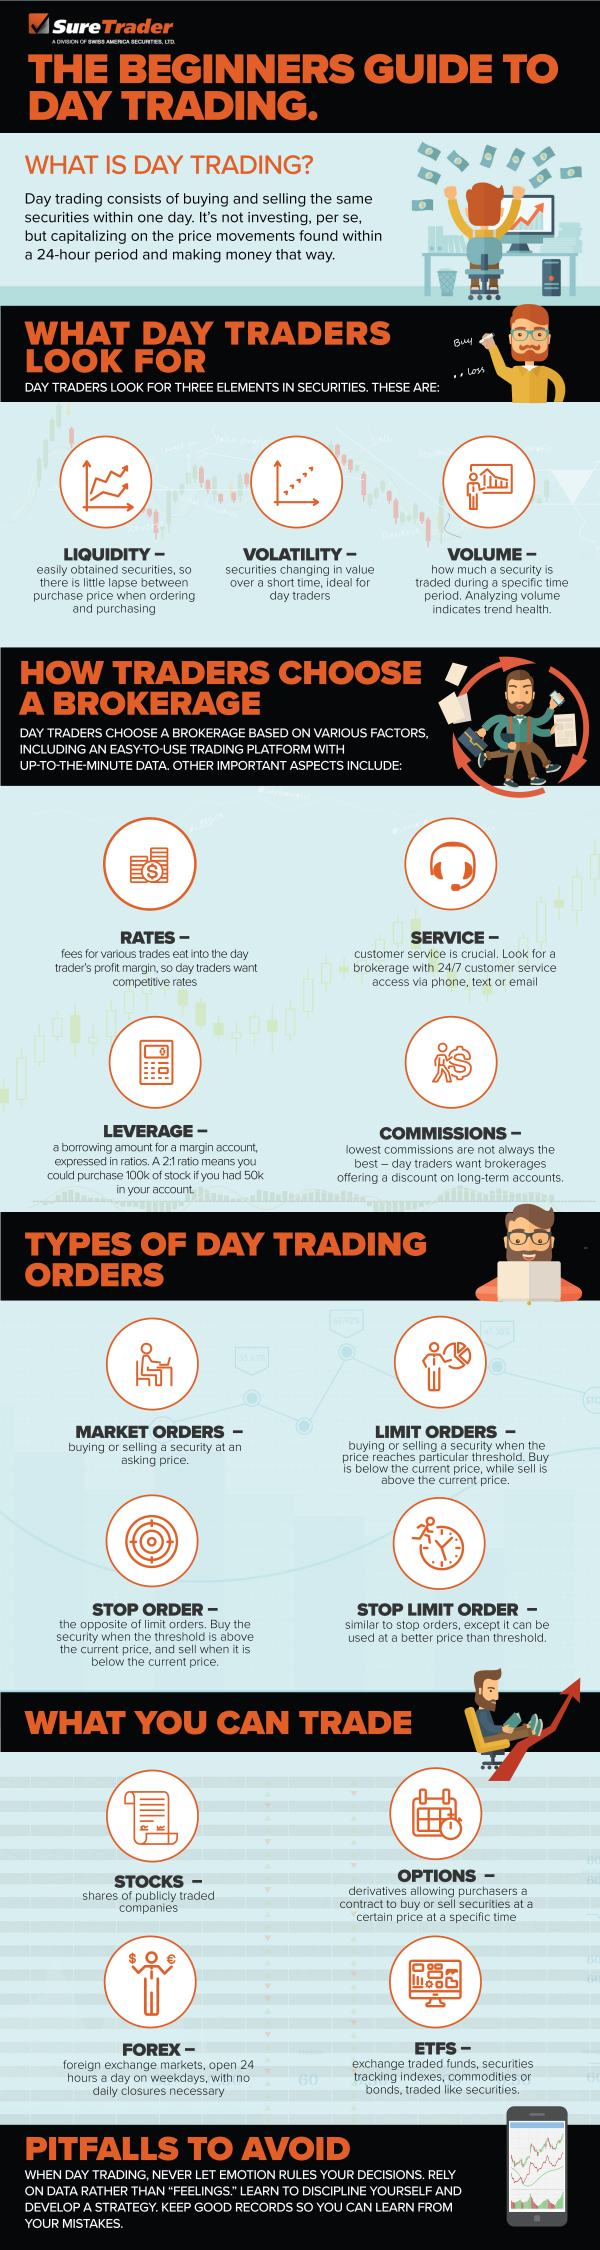 SureTrader InfoGraphic What is Day Trading